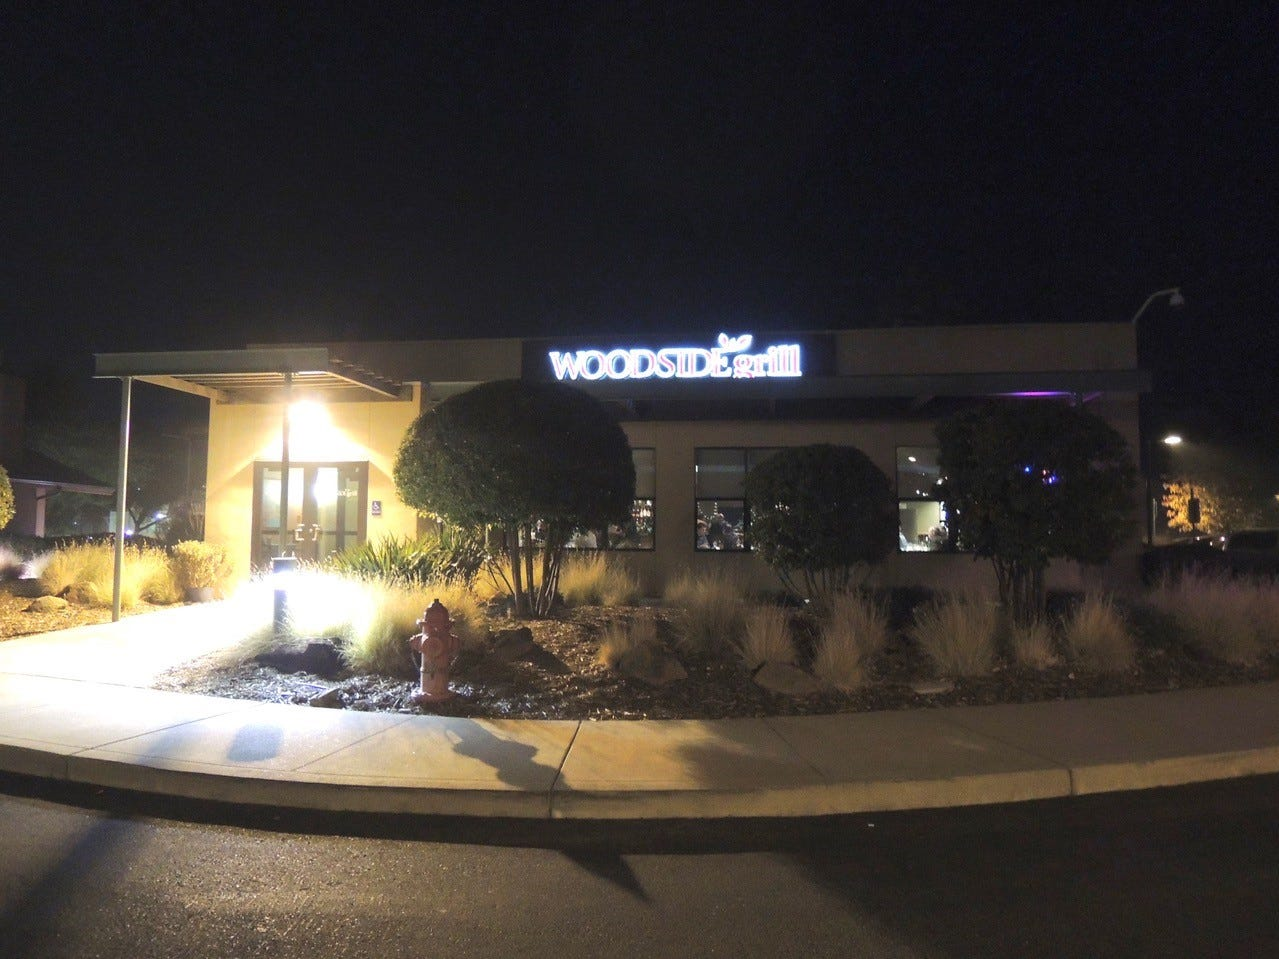 Entrance to the Woodside Grill, attached to the Gaia Hotel in Anderson.